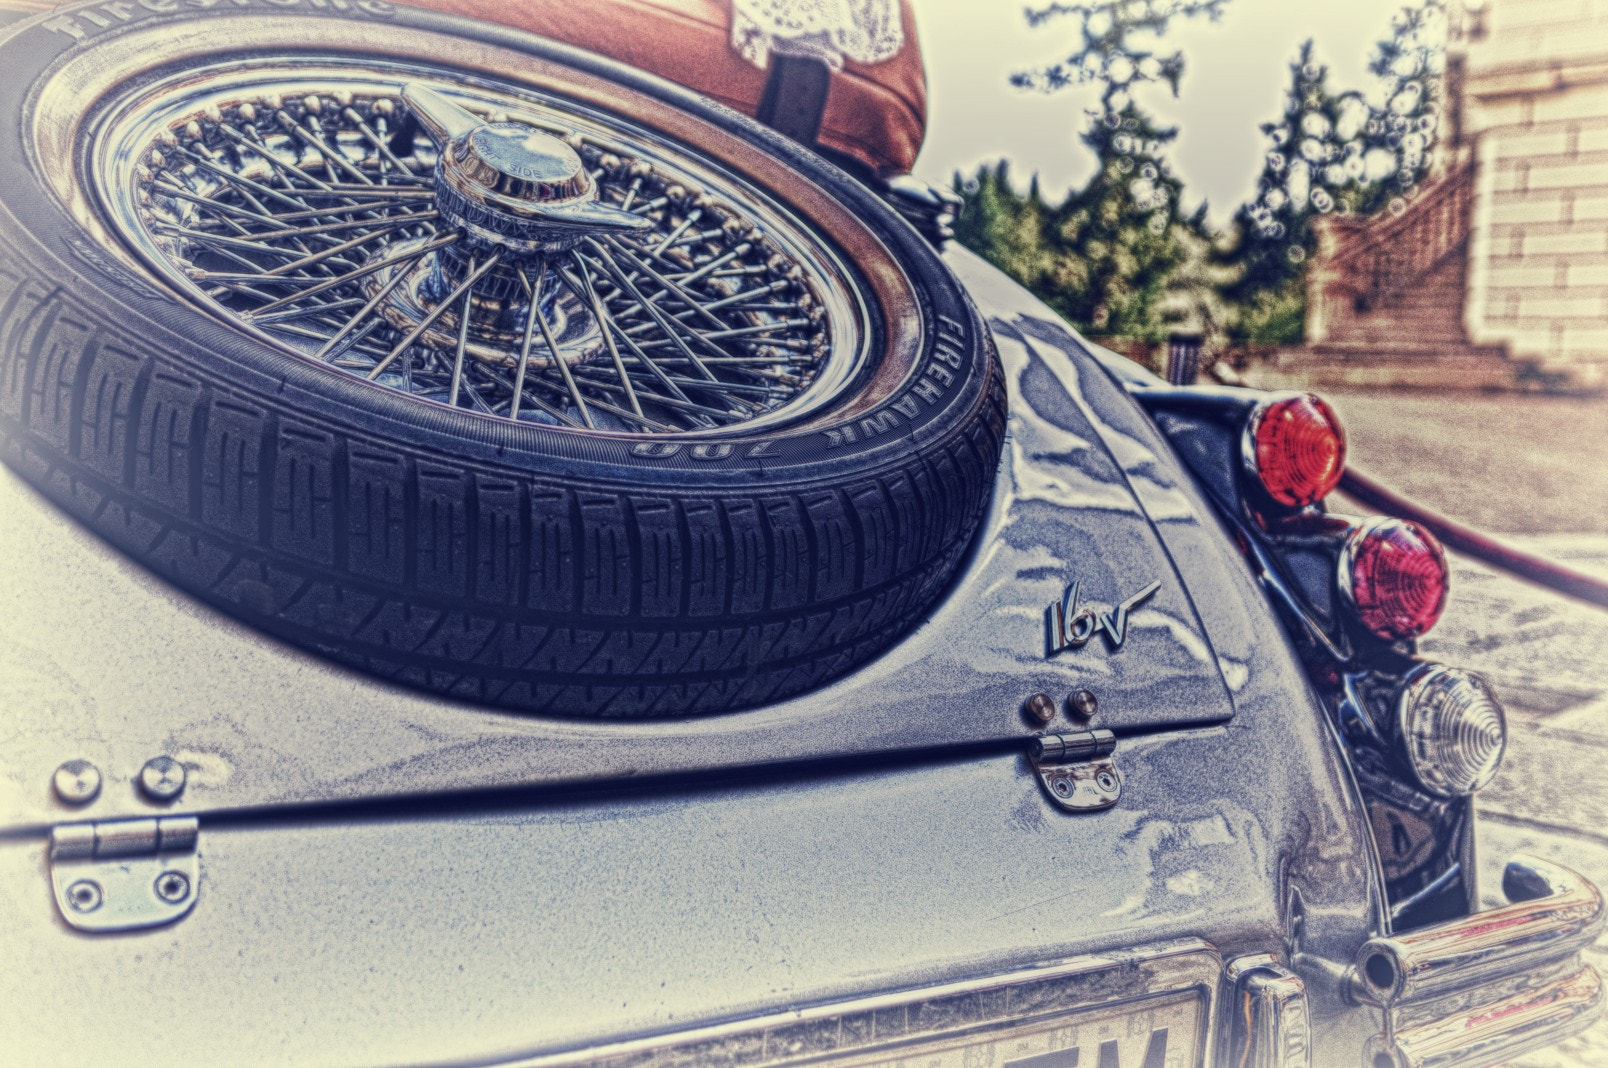 Photograph Old car by Thomas Pipek on 500px